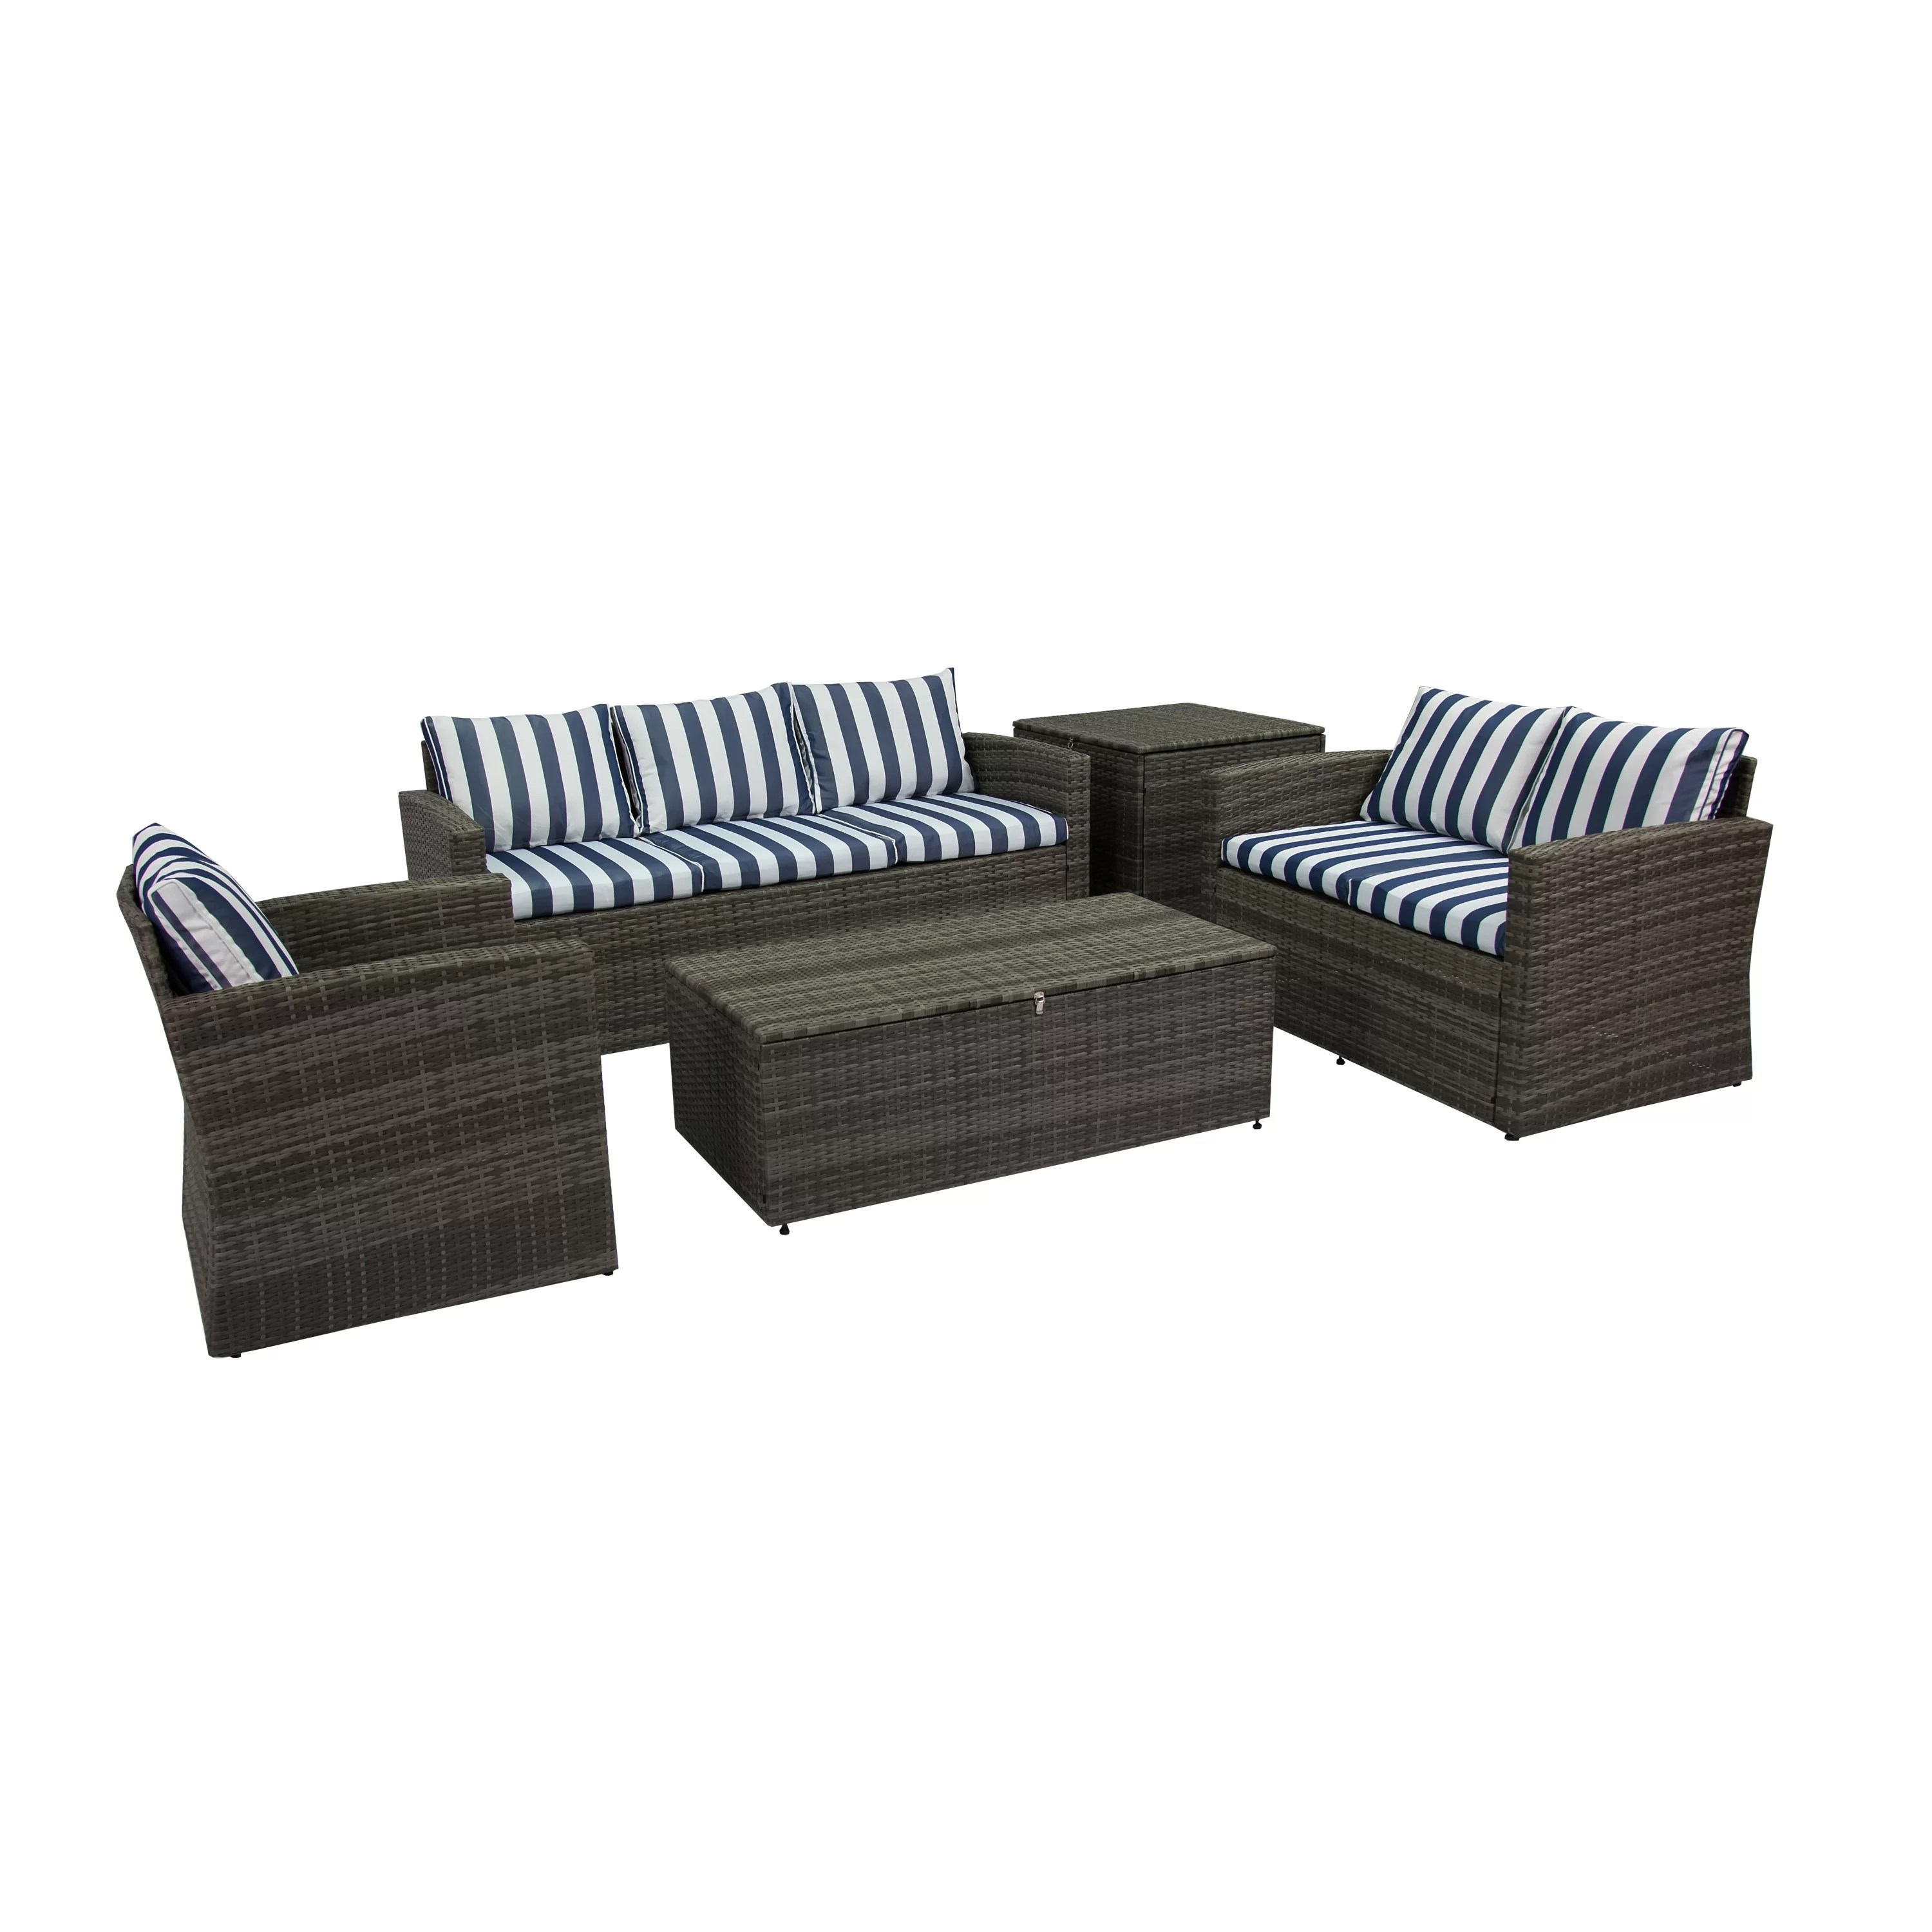 Best Choice Products 5pc Rattan Wicker Sofa Set Instructions Ridgemoor 5 Piece Sofa Set With Cushions